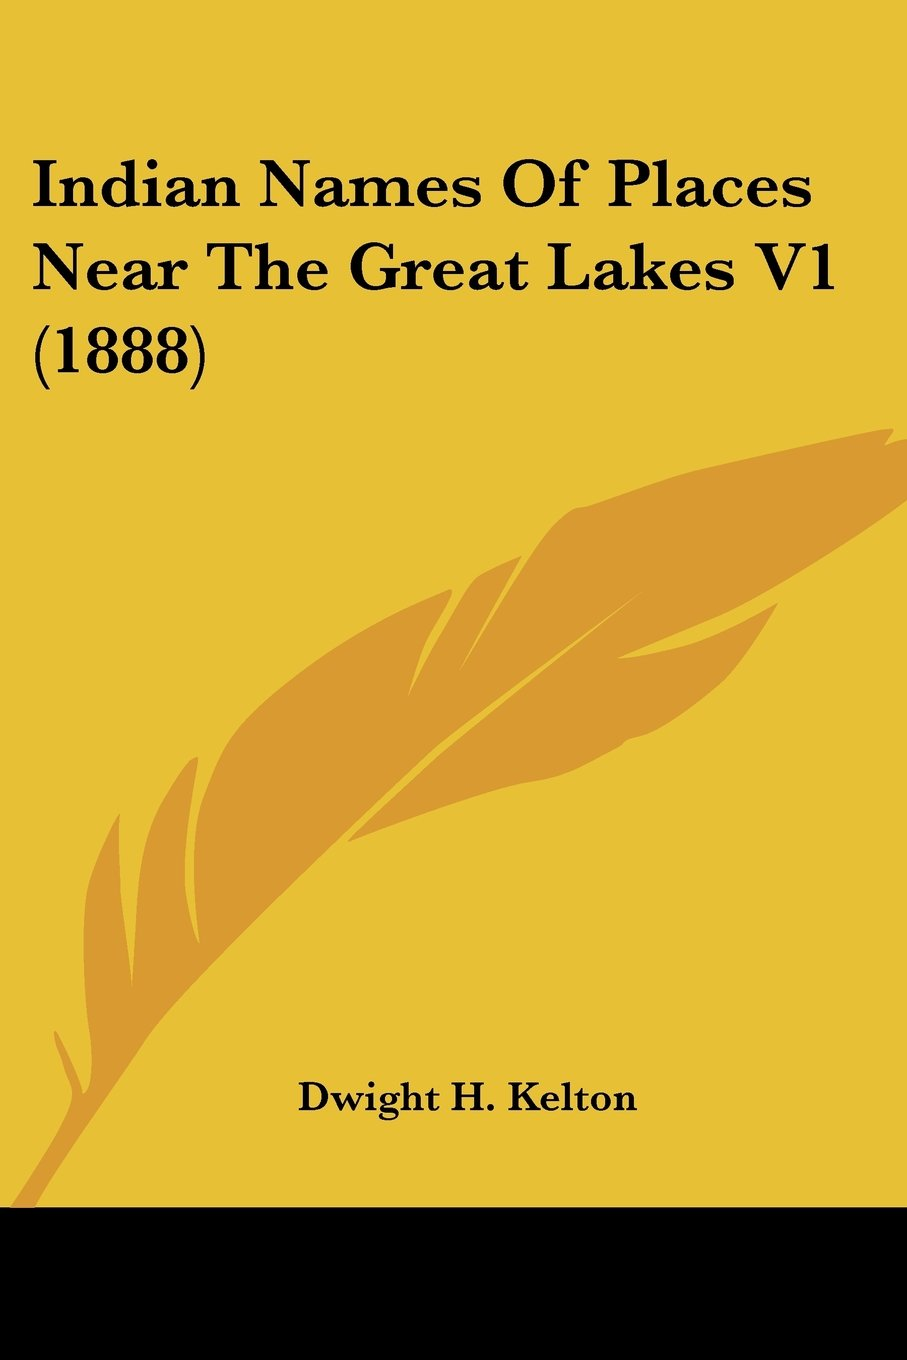 Indian Names Of Places Near The Great Lakes V1 (1888